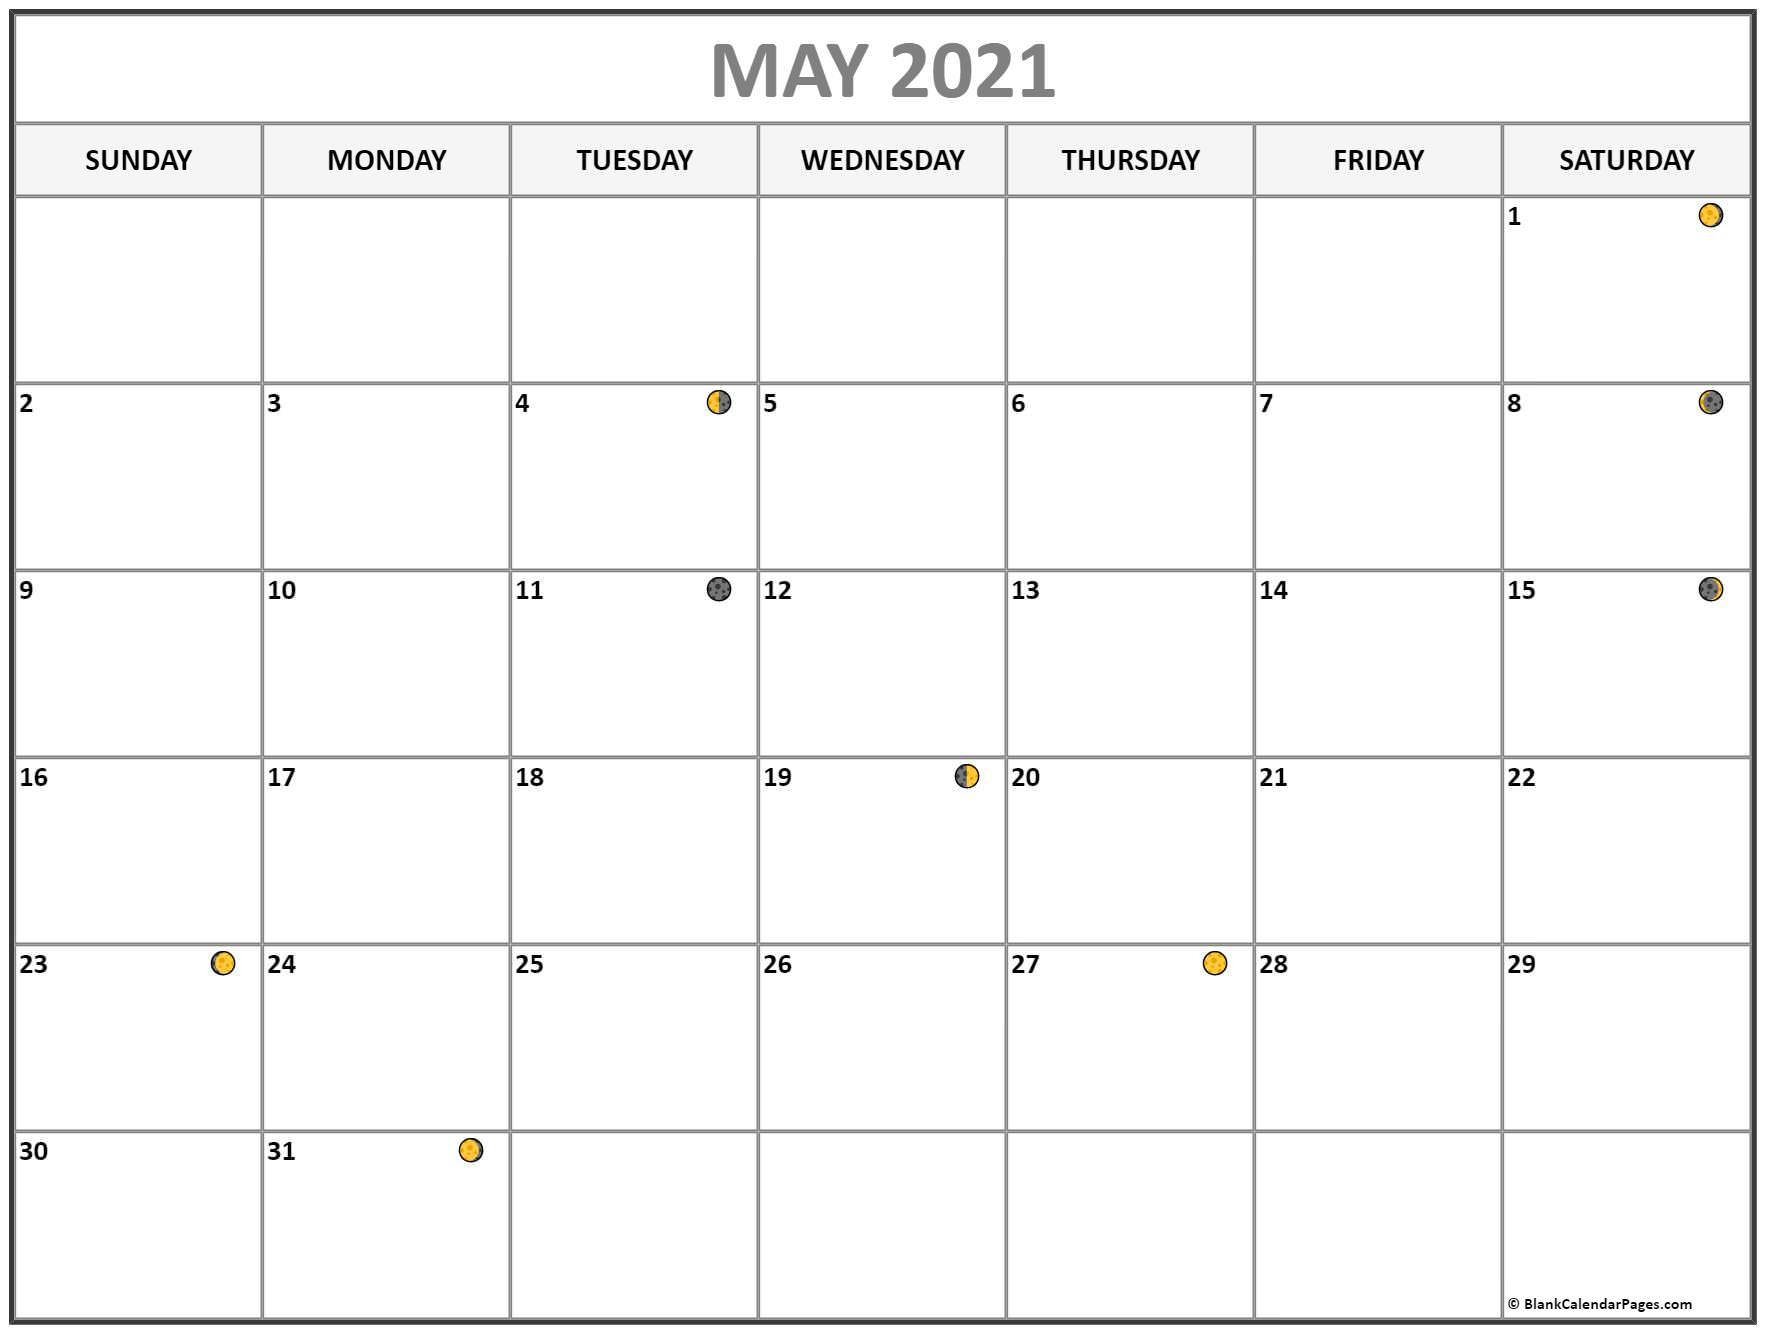 May 2021 Lunar Calendar | Moon Phase Calendar within Printable Yearly Full Moon Calendar For 2021